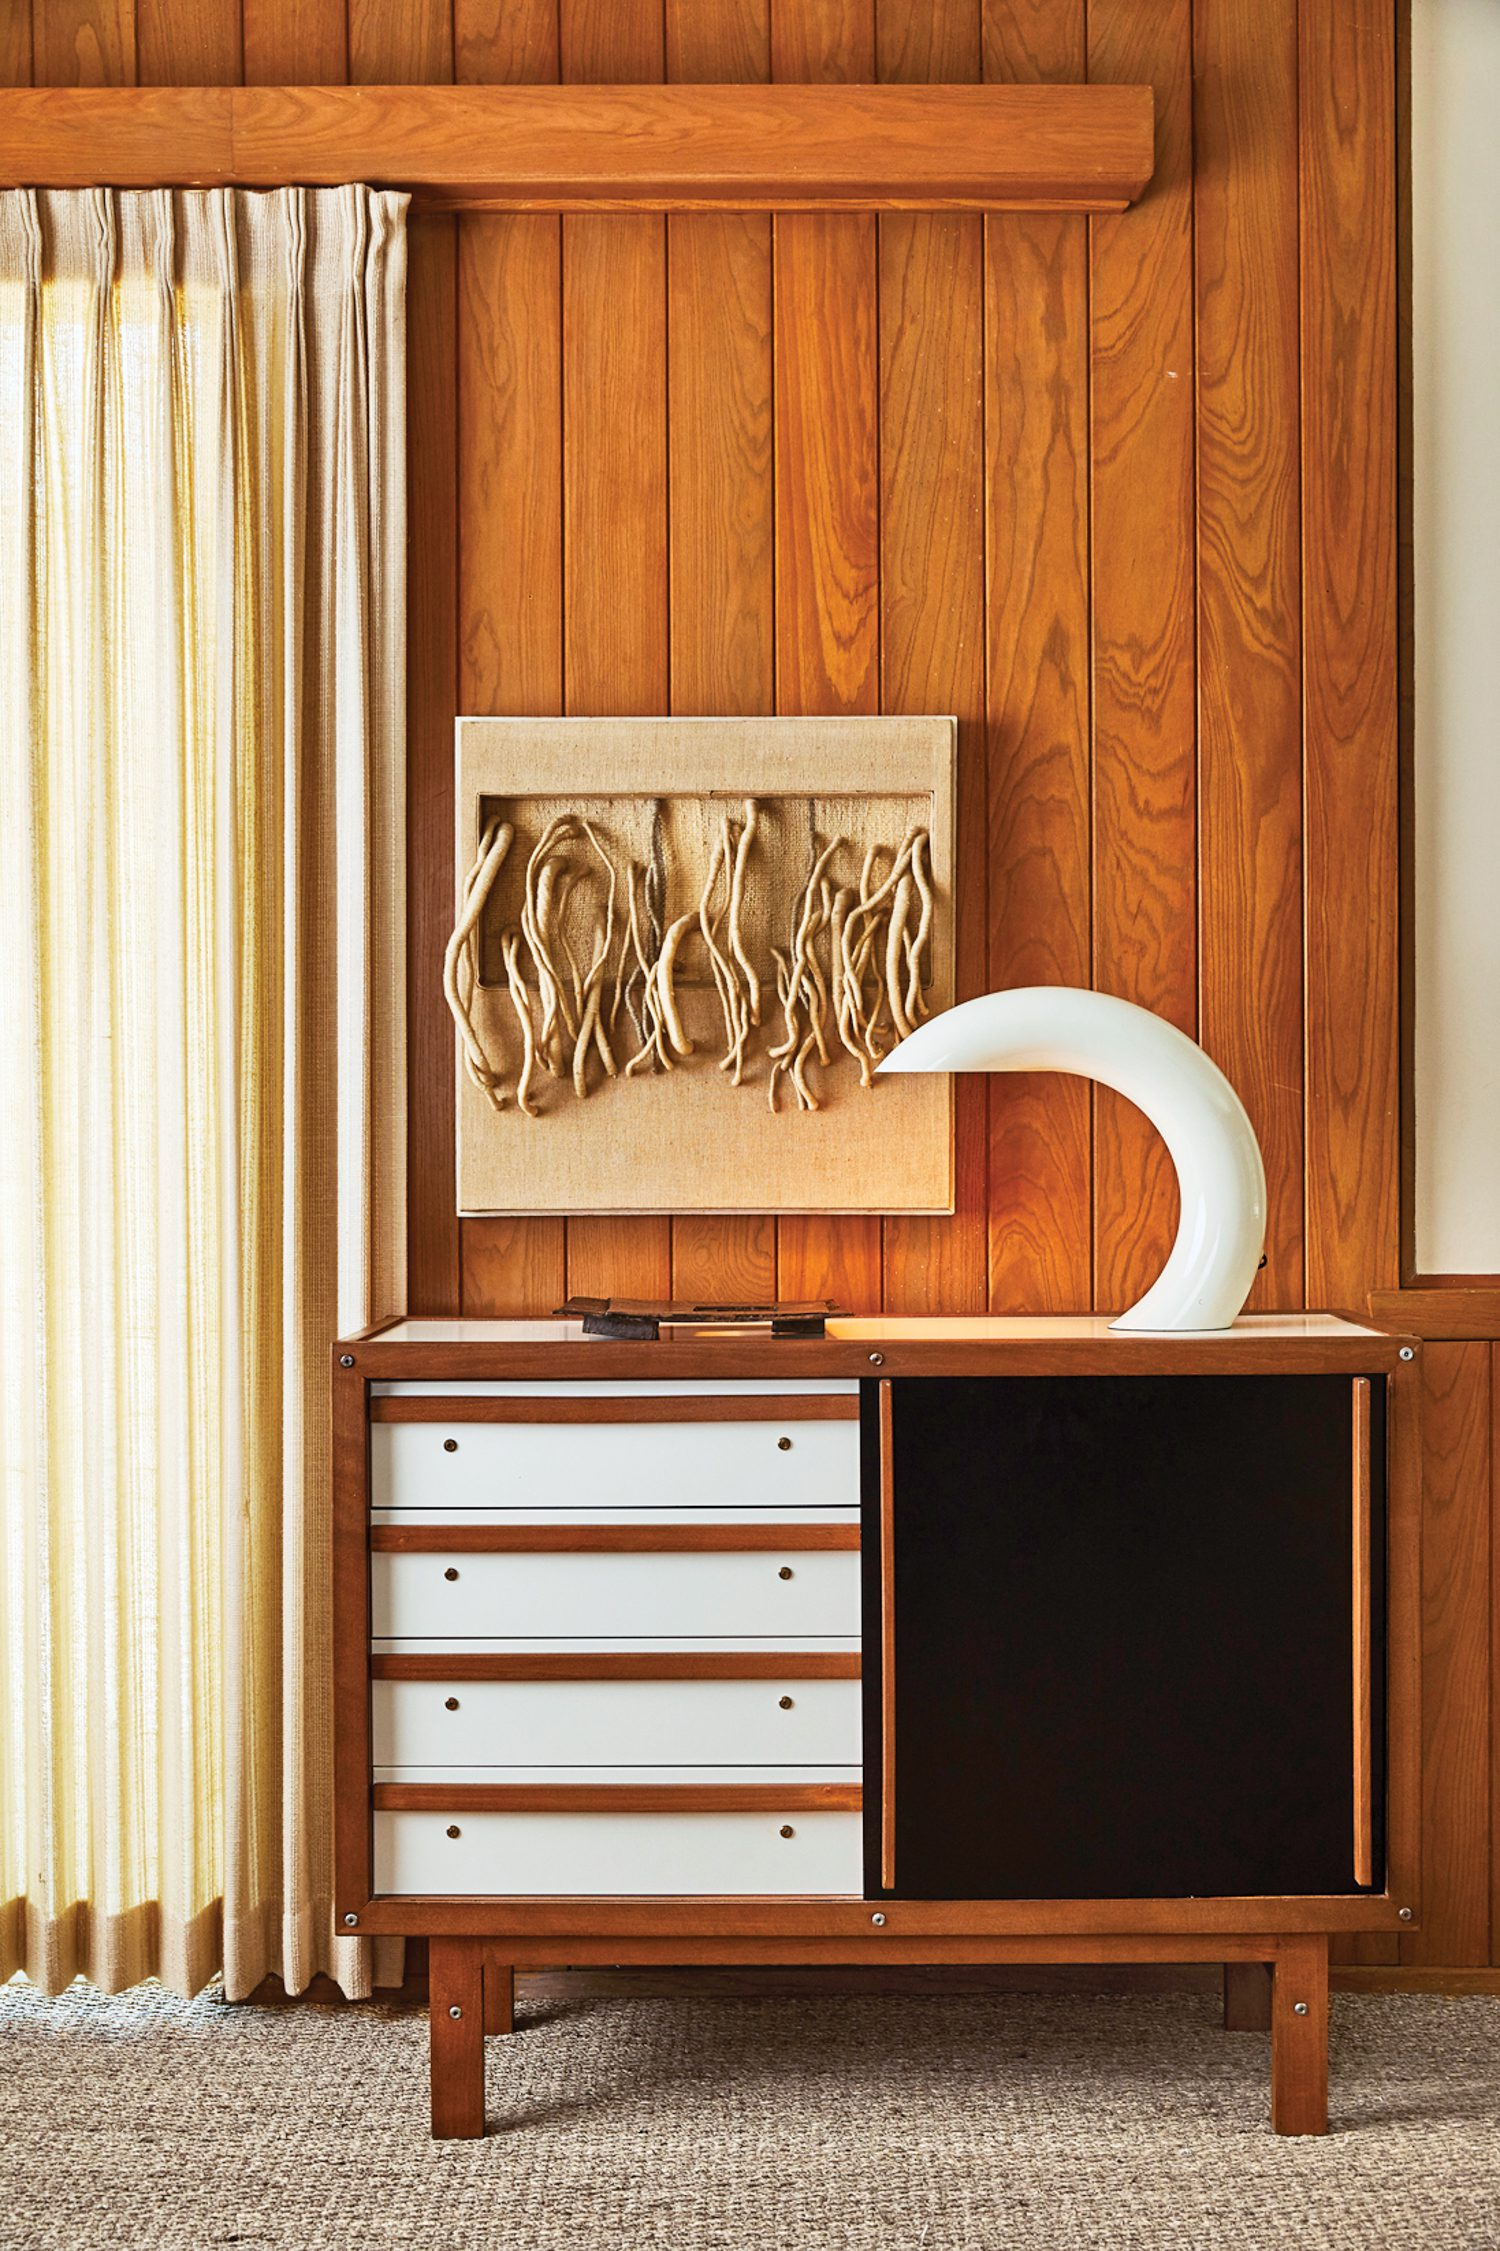 A 1960s George Frydman table lamp perches on a vintage sideboard in the family room.